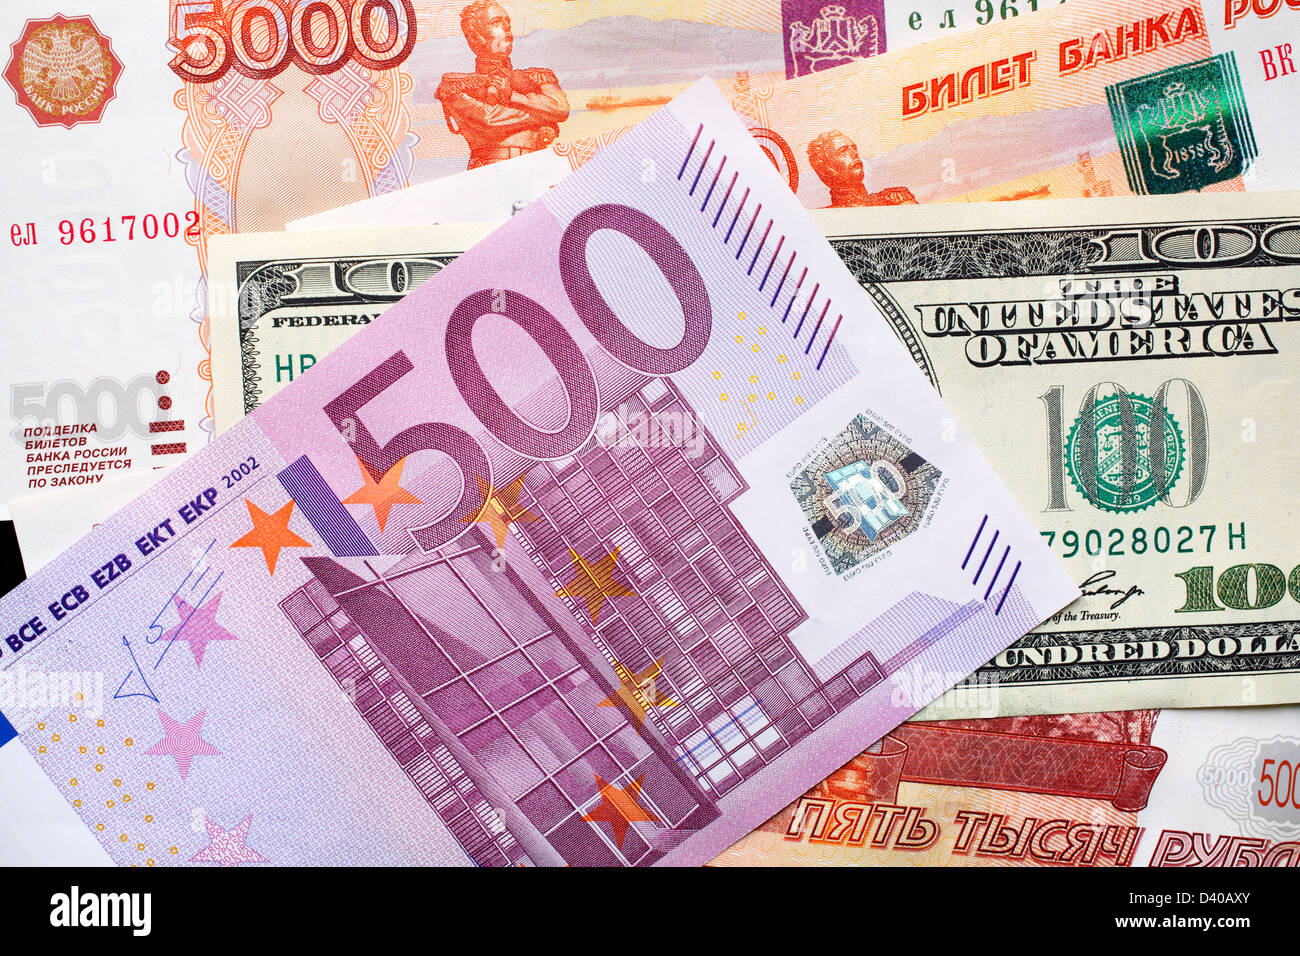 500 Euro banknote, 100 Dollars banknote and 5000 Russian Rubles banknotes in background Stock Photo